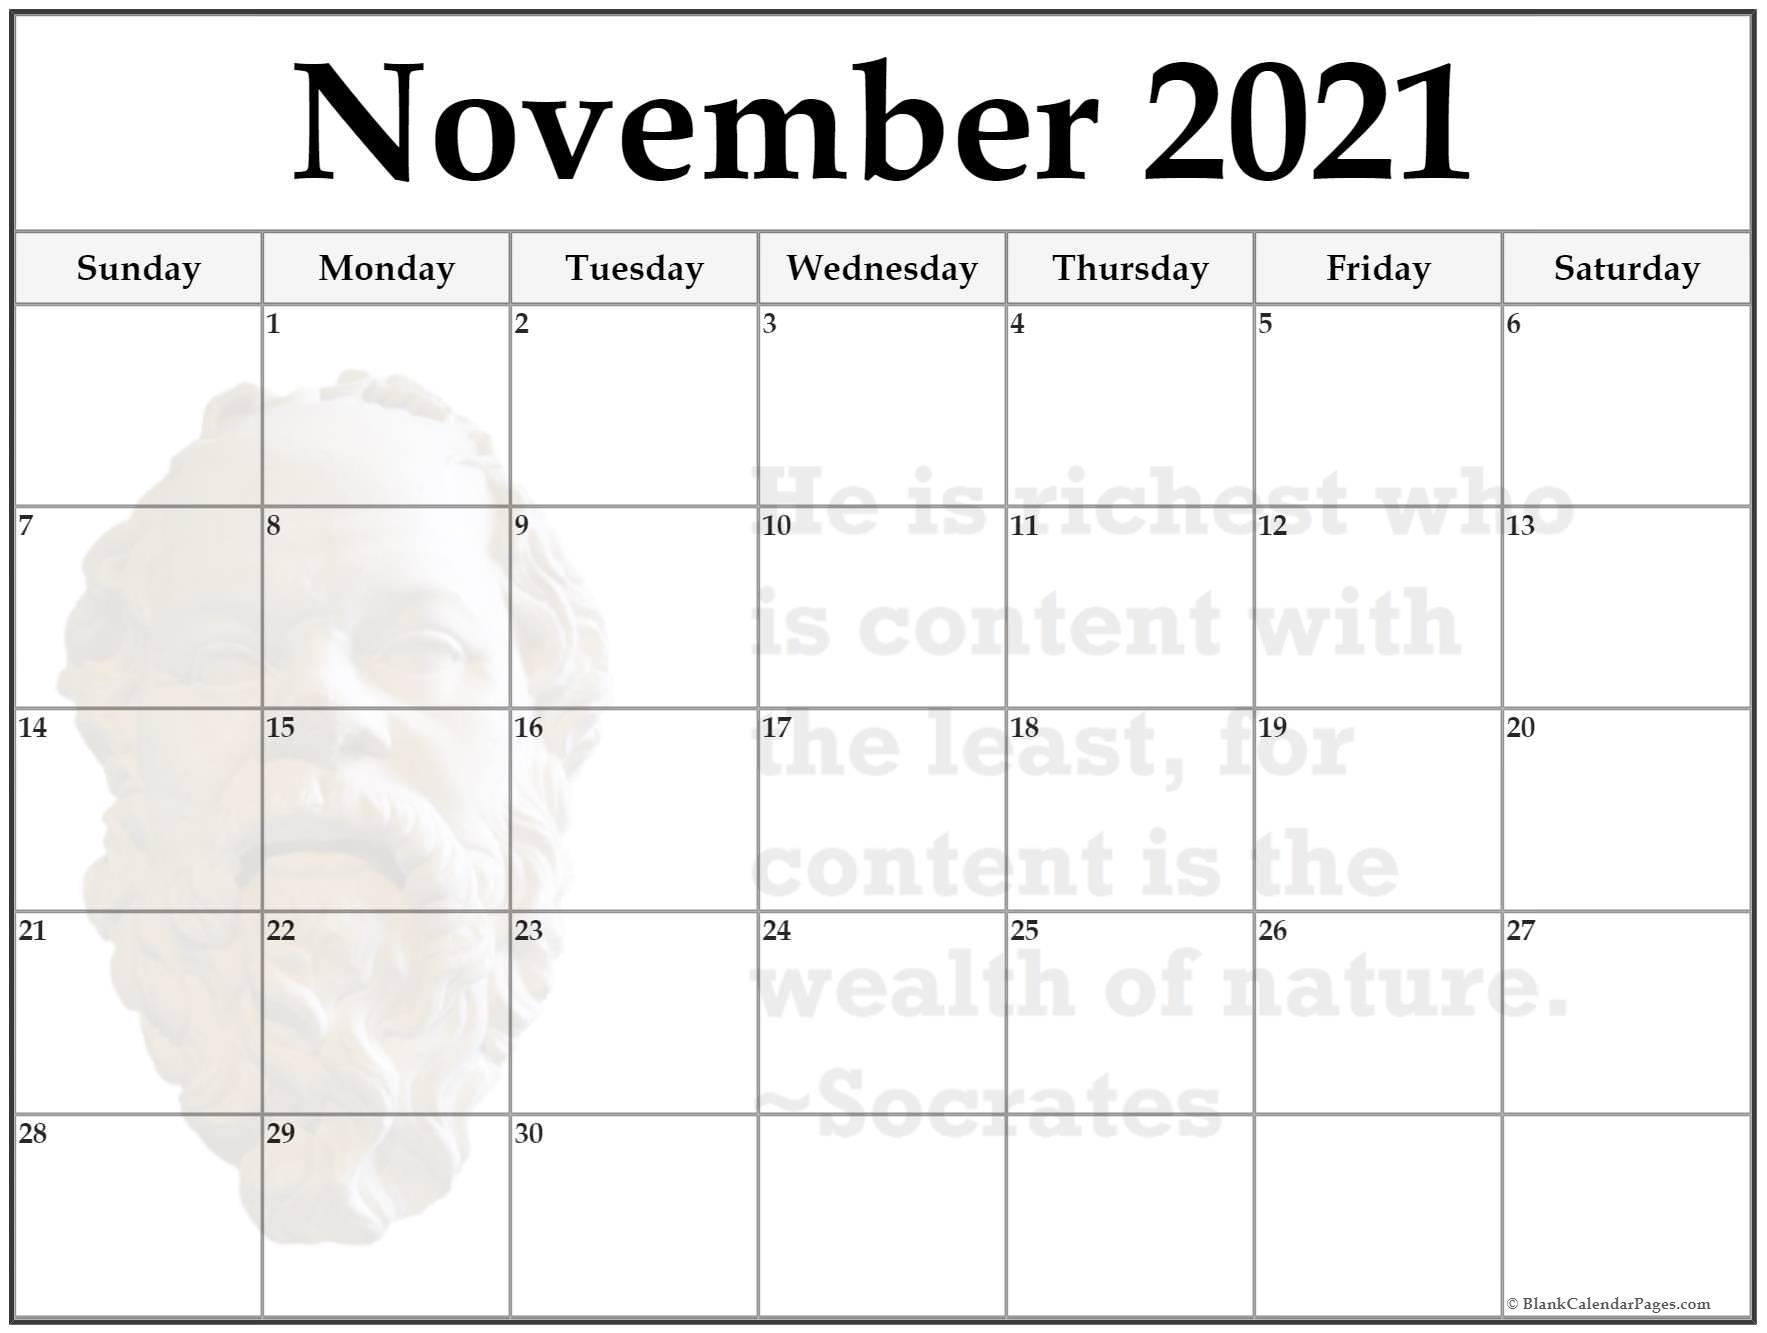 November 2021 socrates calendar. He is richest who is content with the least, for content is the wealth of nature. ~Socrates